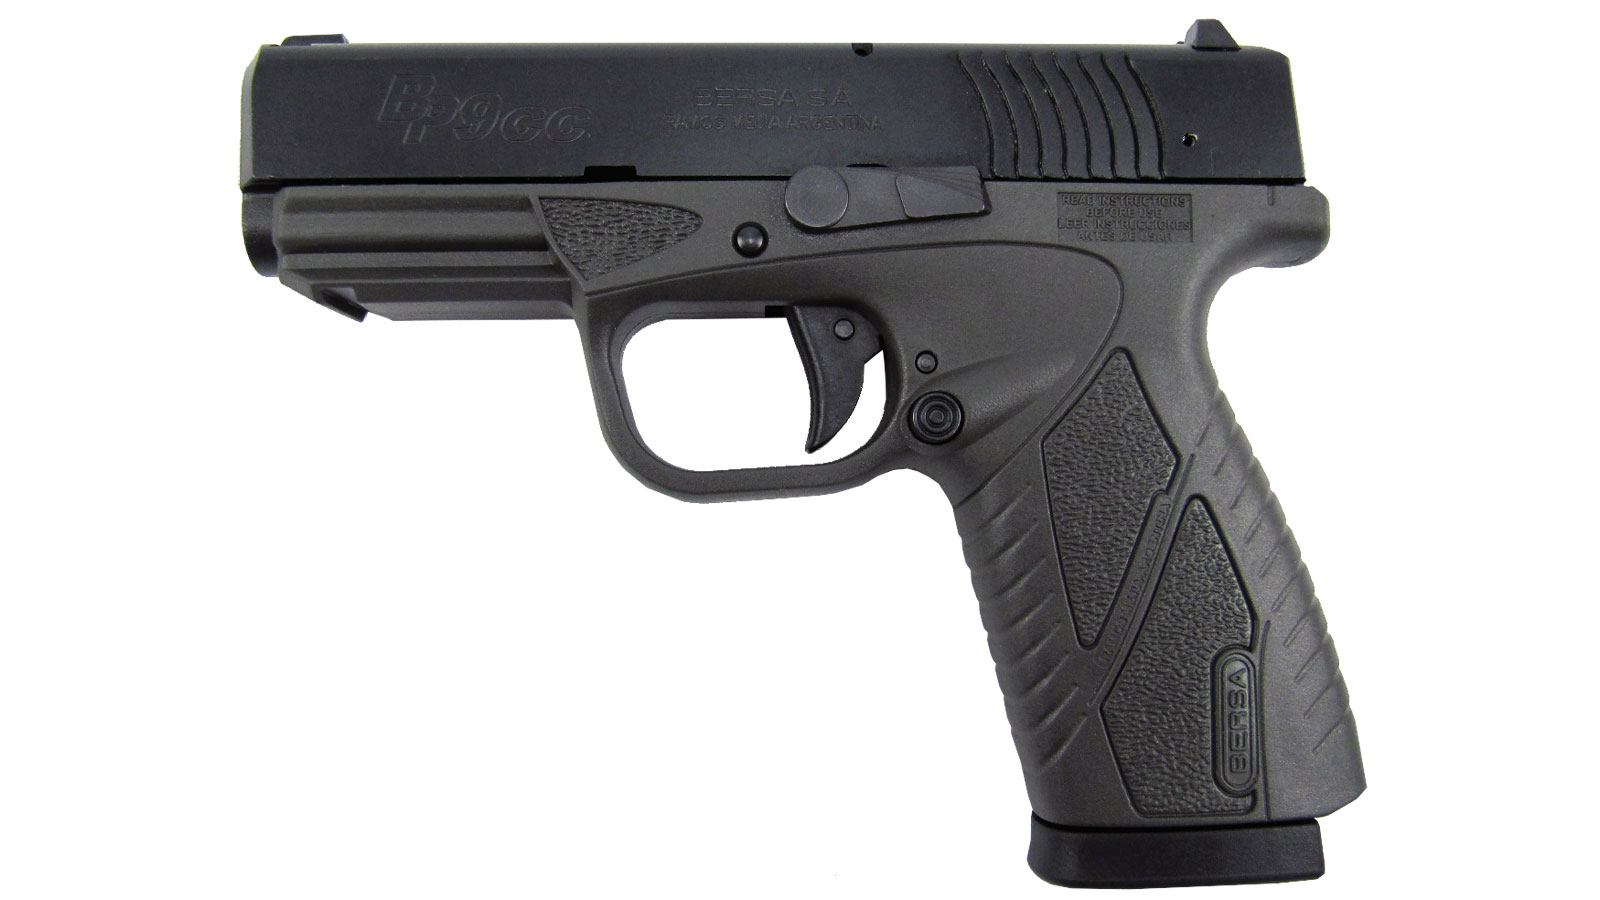 Bersa BP9GRCC BPCC Concealed Carry Double 9mm Luger 3.3 8+1 Gray Polymer Grip|Frame Grip Black in.